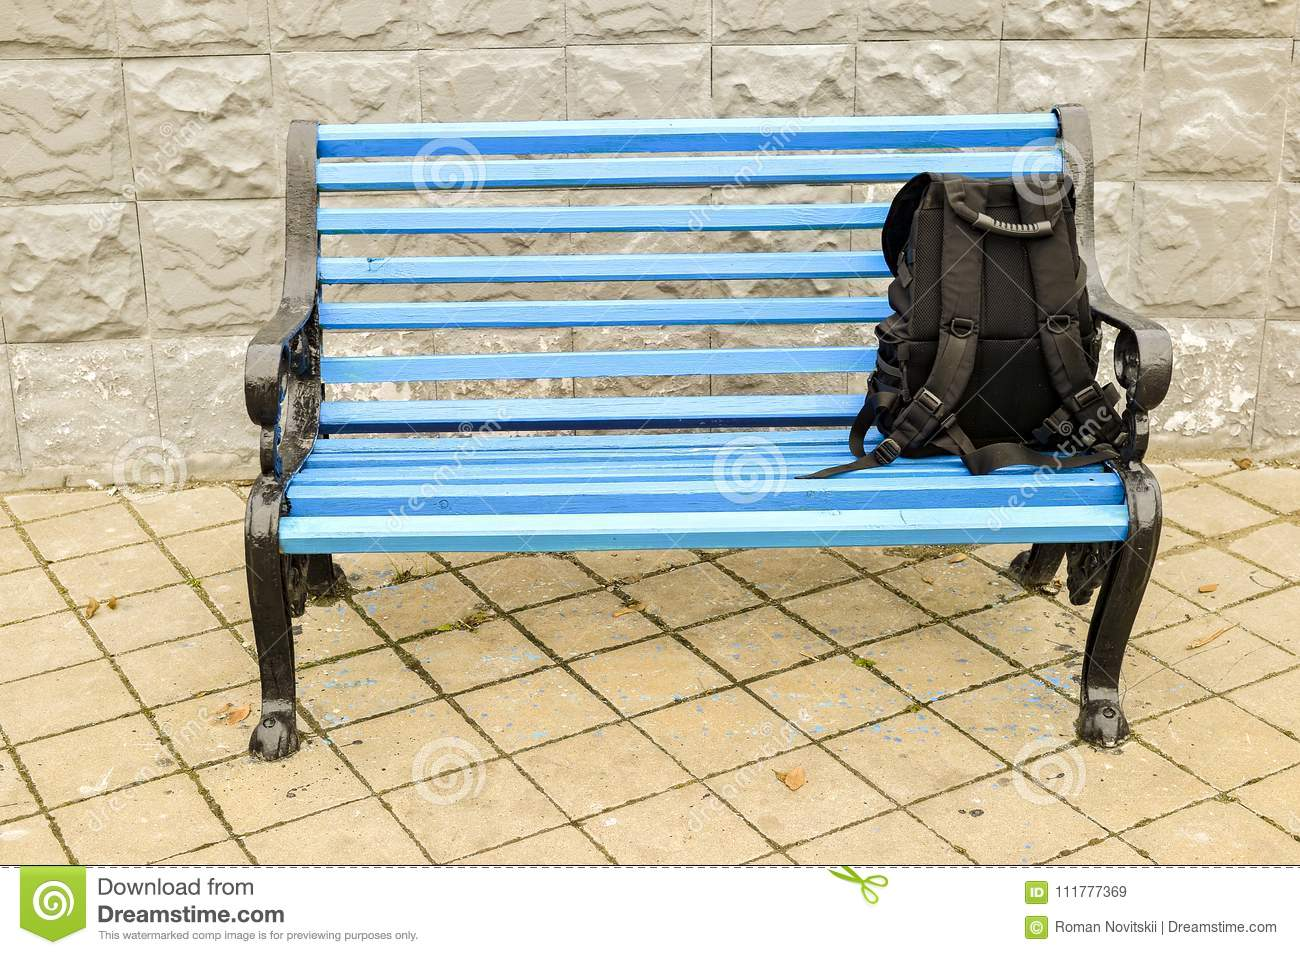 The blue bench in the Park on the tiled pavement with a black backpack. No body.